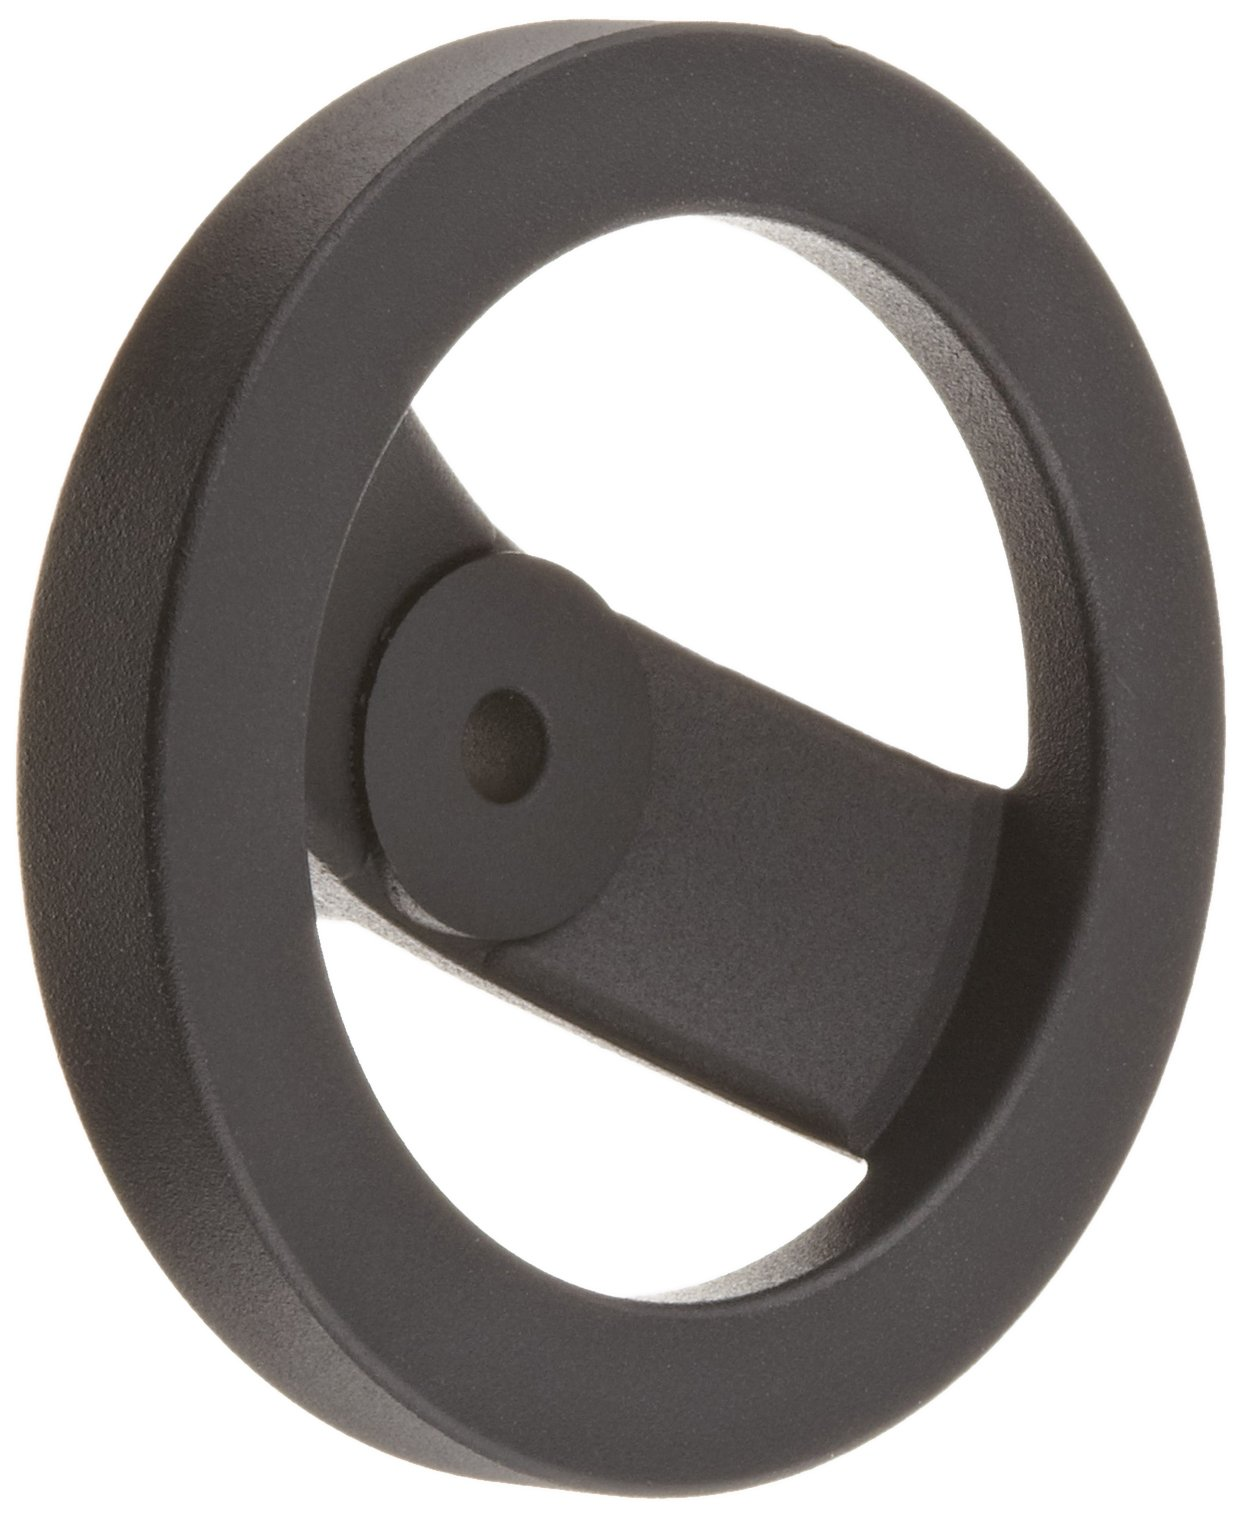 2 Spoked Black Powder Coated Aluminum Dished Hand Wheel without Handle, 5'' Diameter, 3/8'' Hole Diameter (Pack of 1)